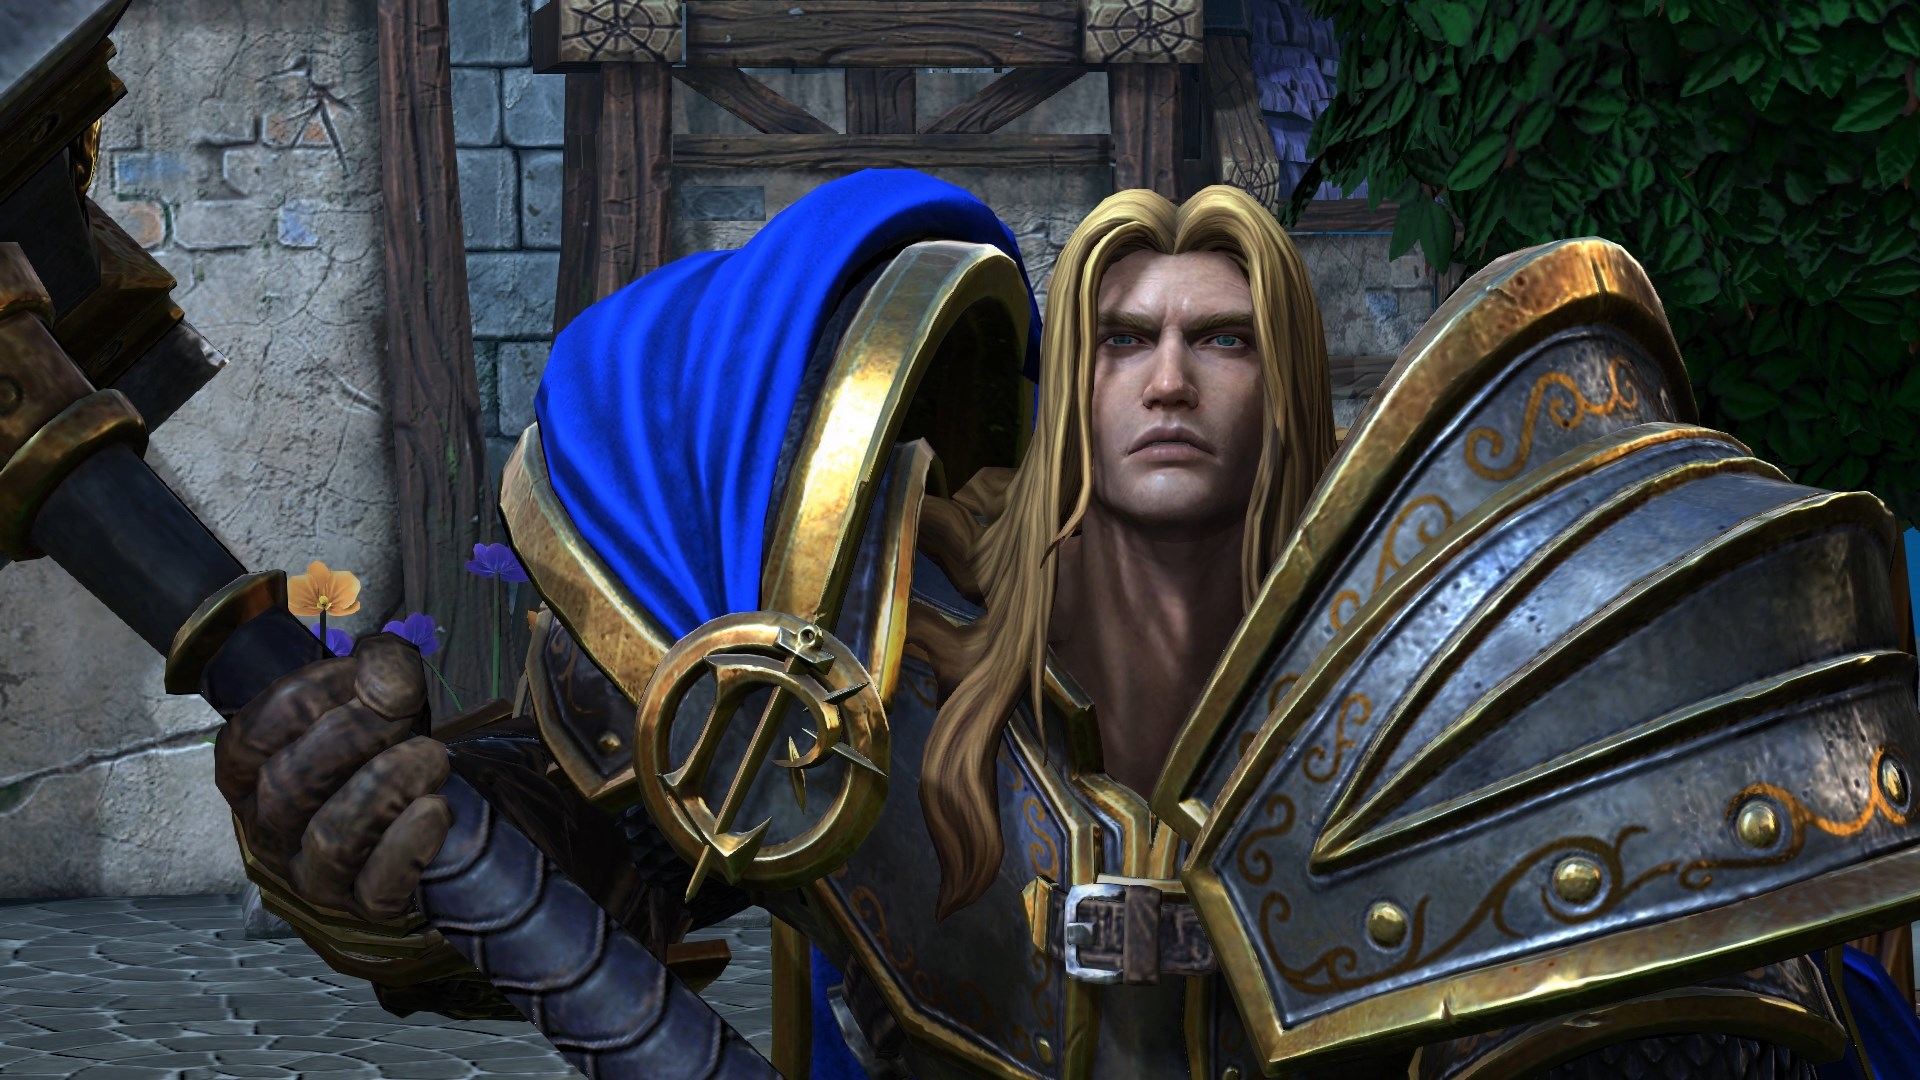 The Retrobeat Warcraft Iii Reforged Looks To Balance The Old